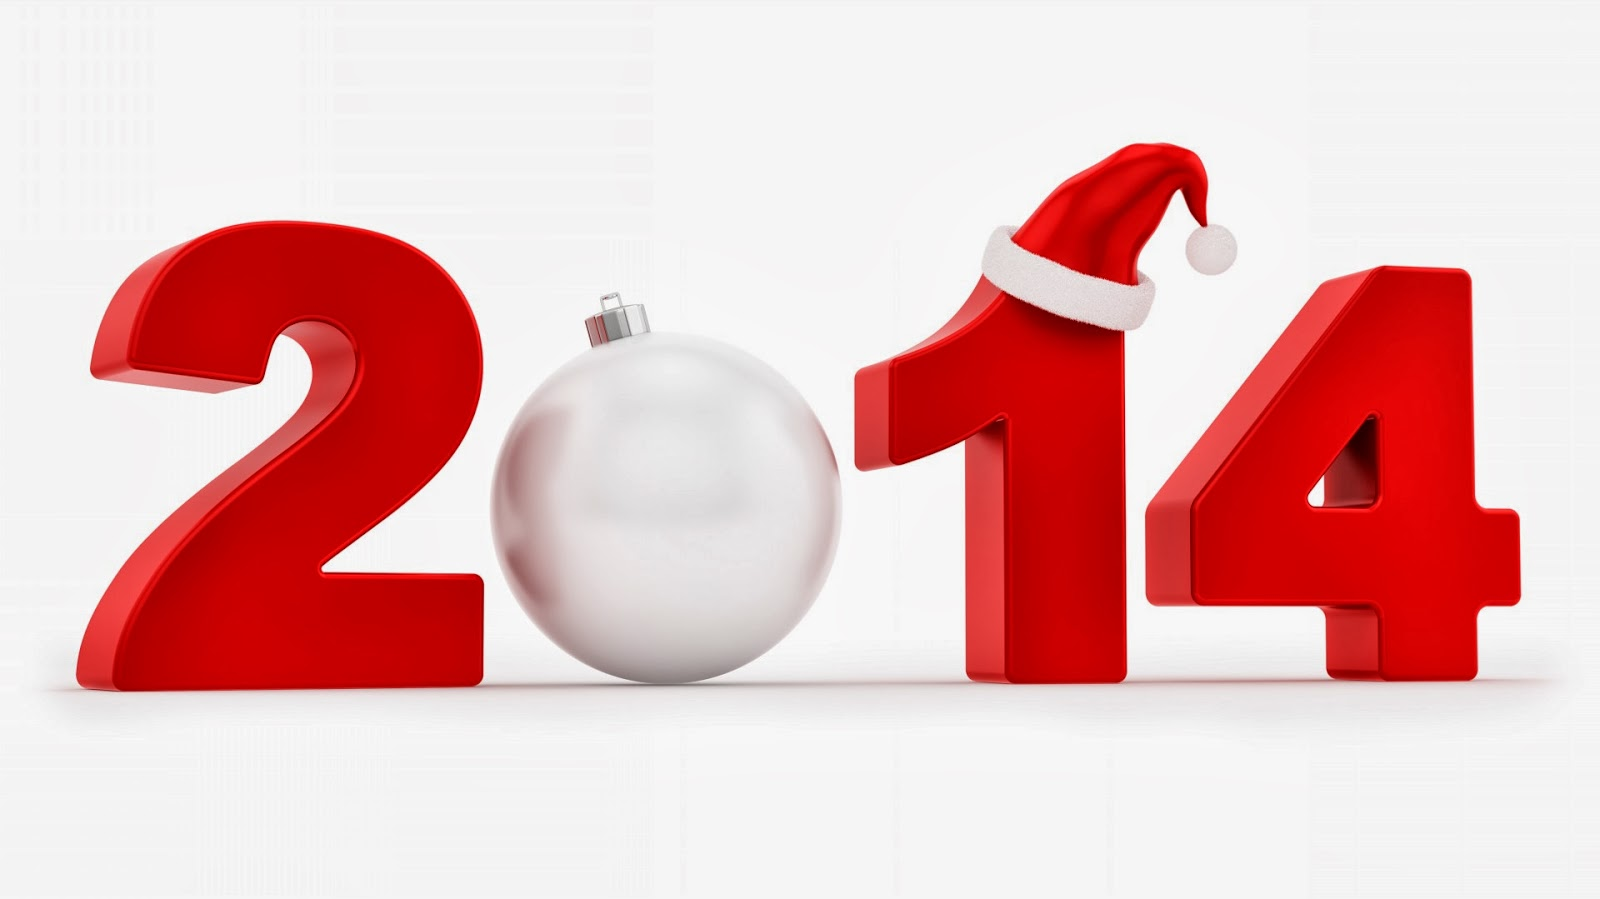 2014 wallpapers hd wallpapers best happy new year wallpaper 2014 hd voltagebd Choice Image